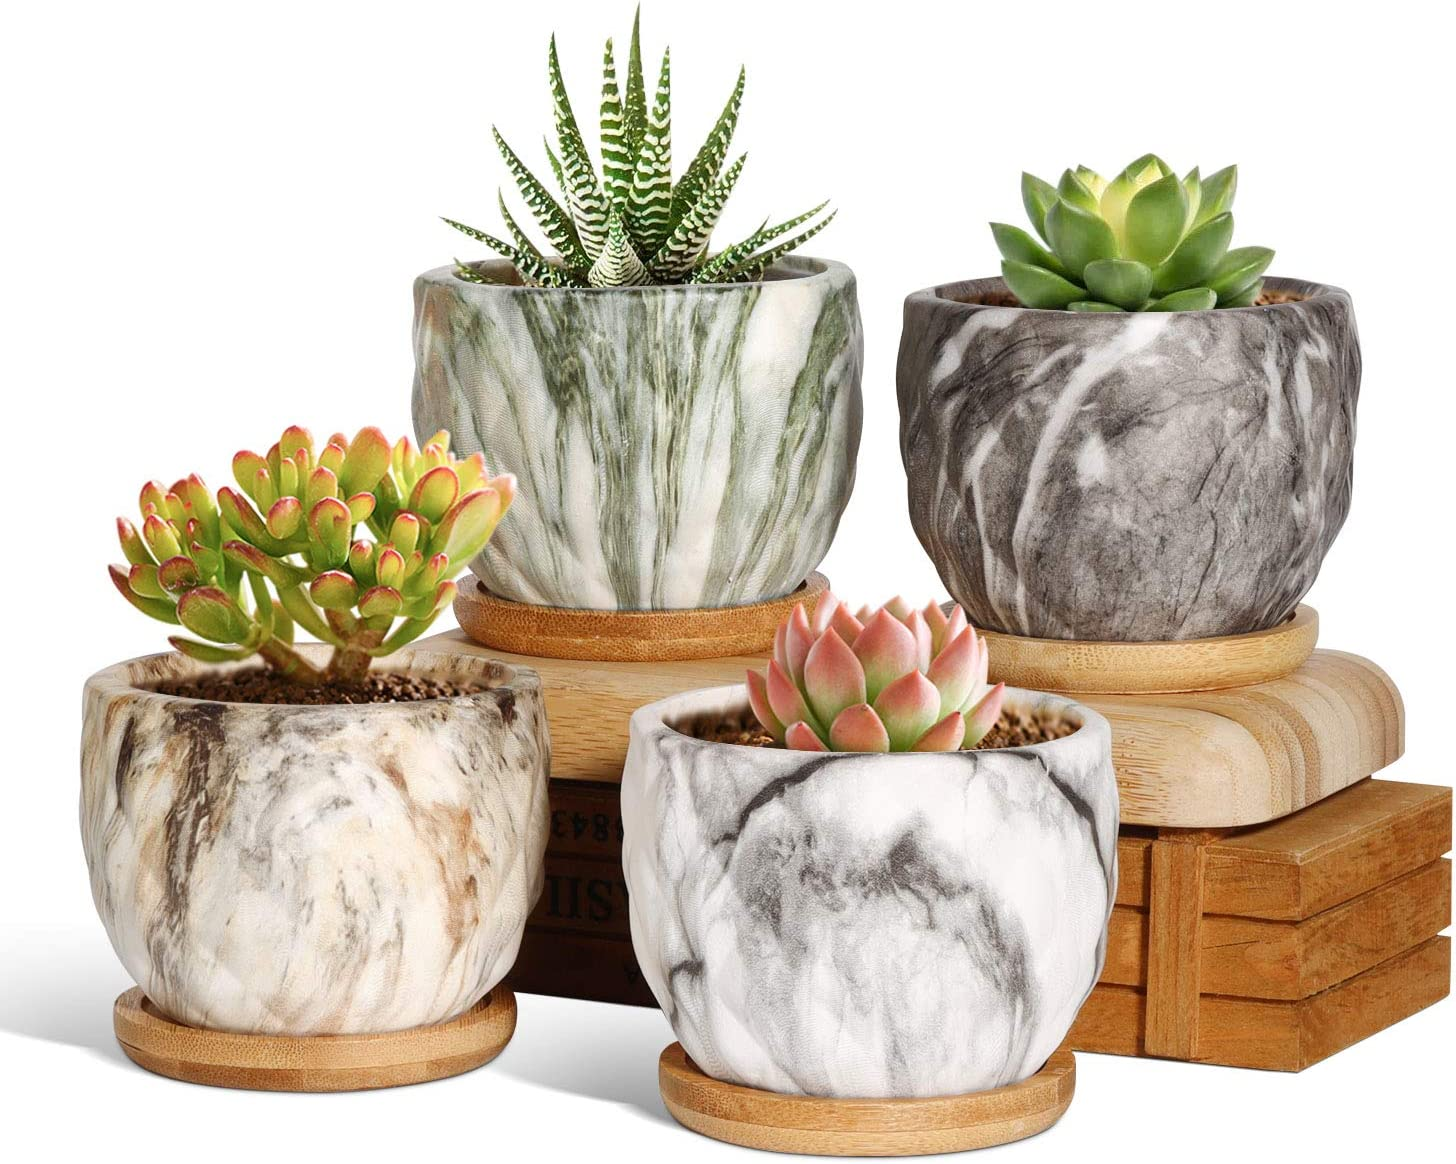 T4U Ceramic Succulent Pots 3 Inch Marbleize Collection Set of 4 with Trays, Small Modern Style Planter with Drainage Hole, Colorful Porcelain Herbs Cactus Container for Home and Office Decor